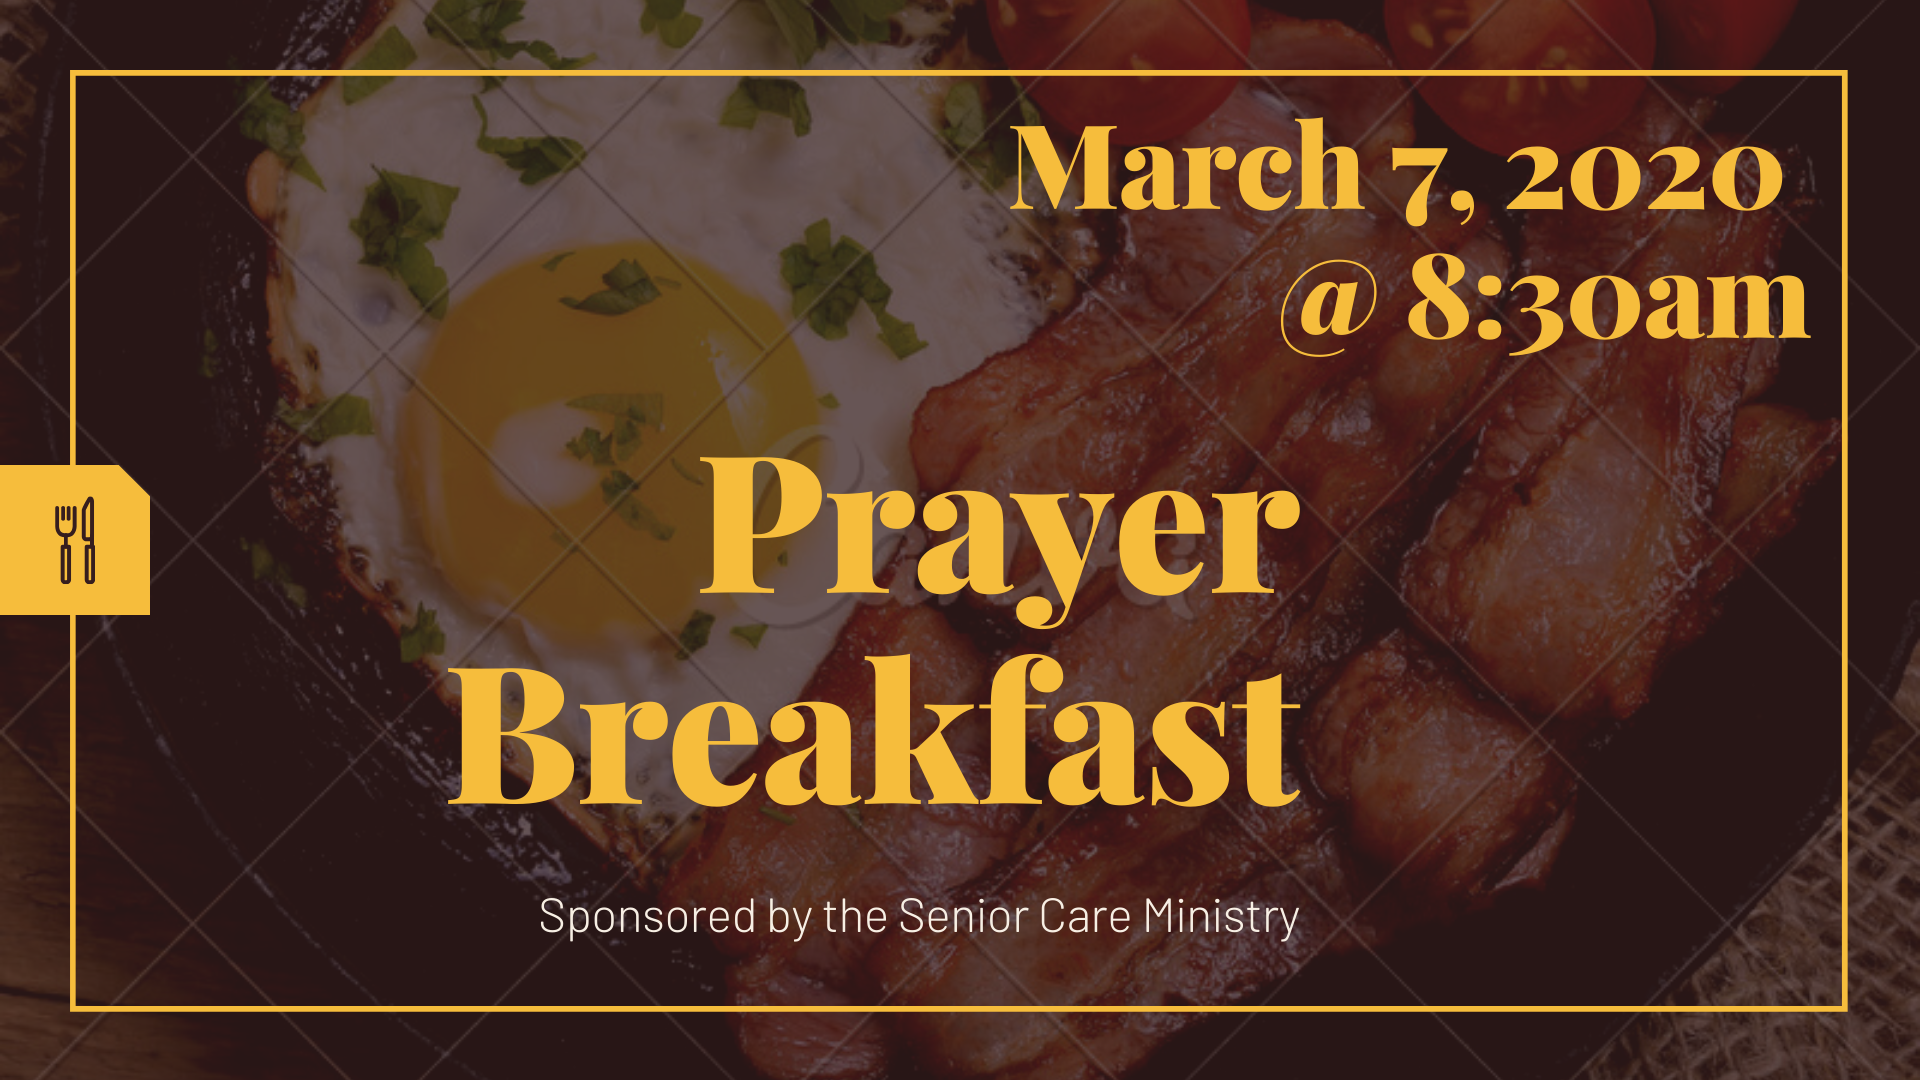 Prayer_Breakfast_March_2020.png